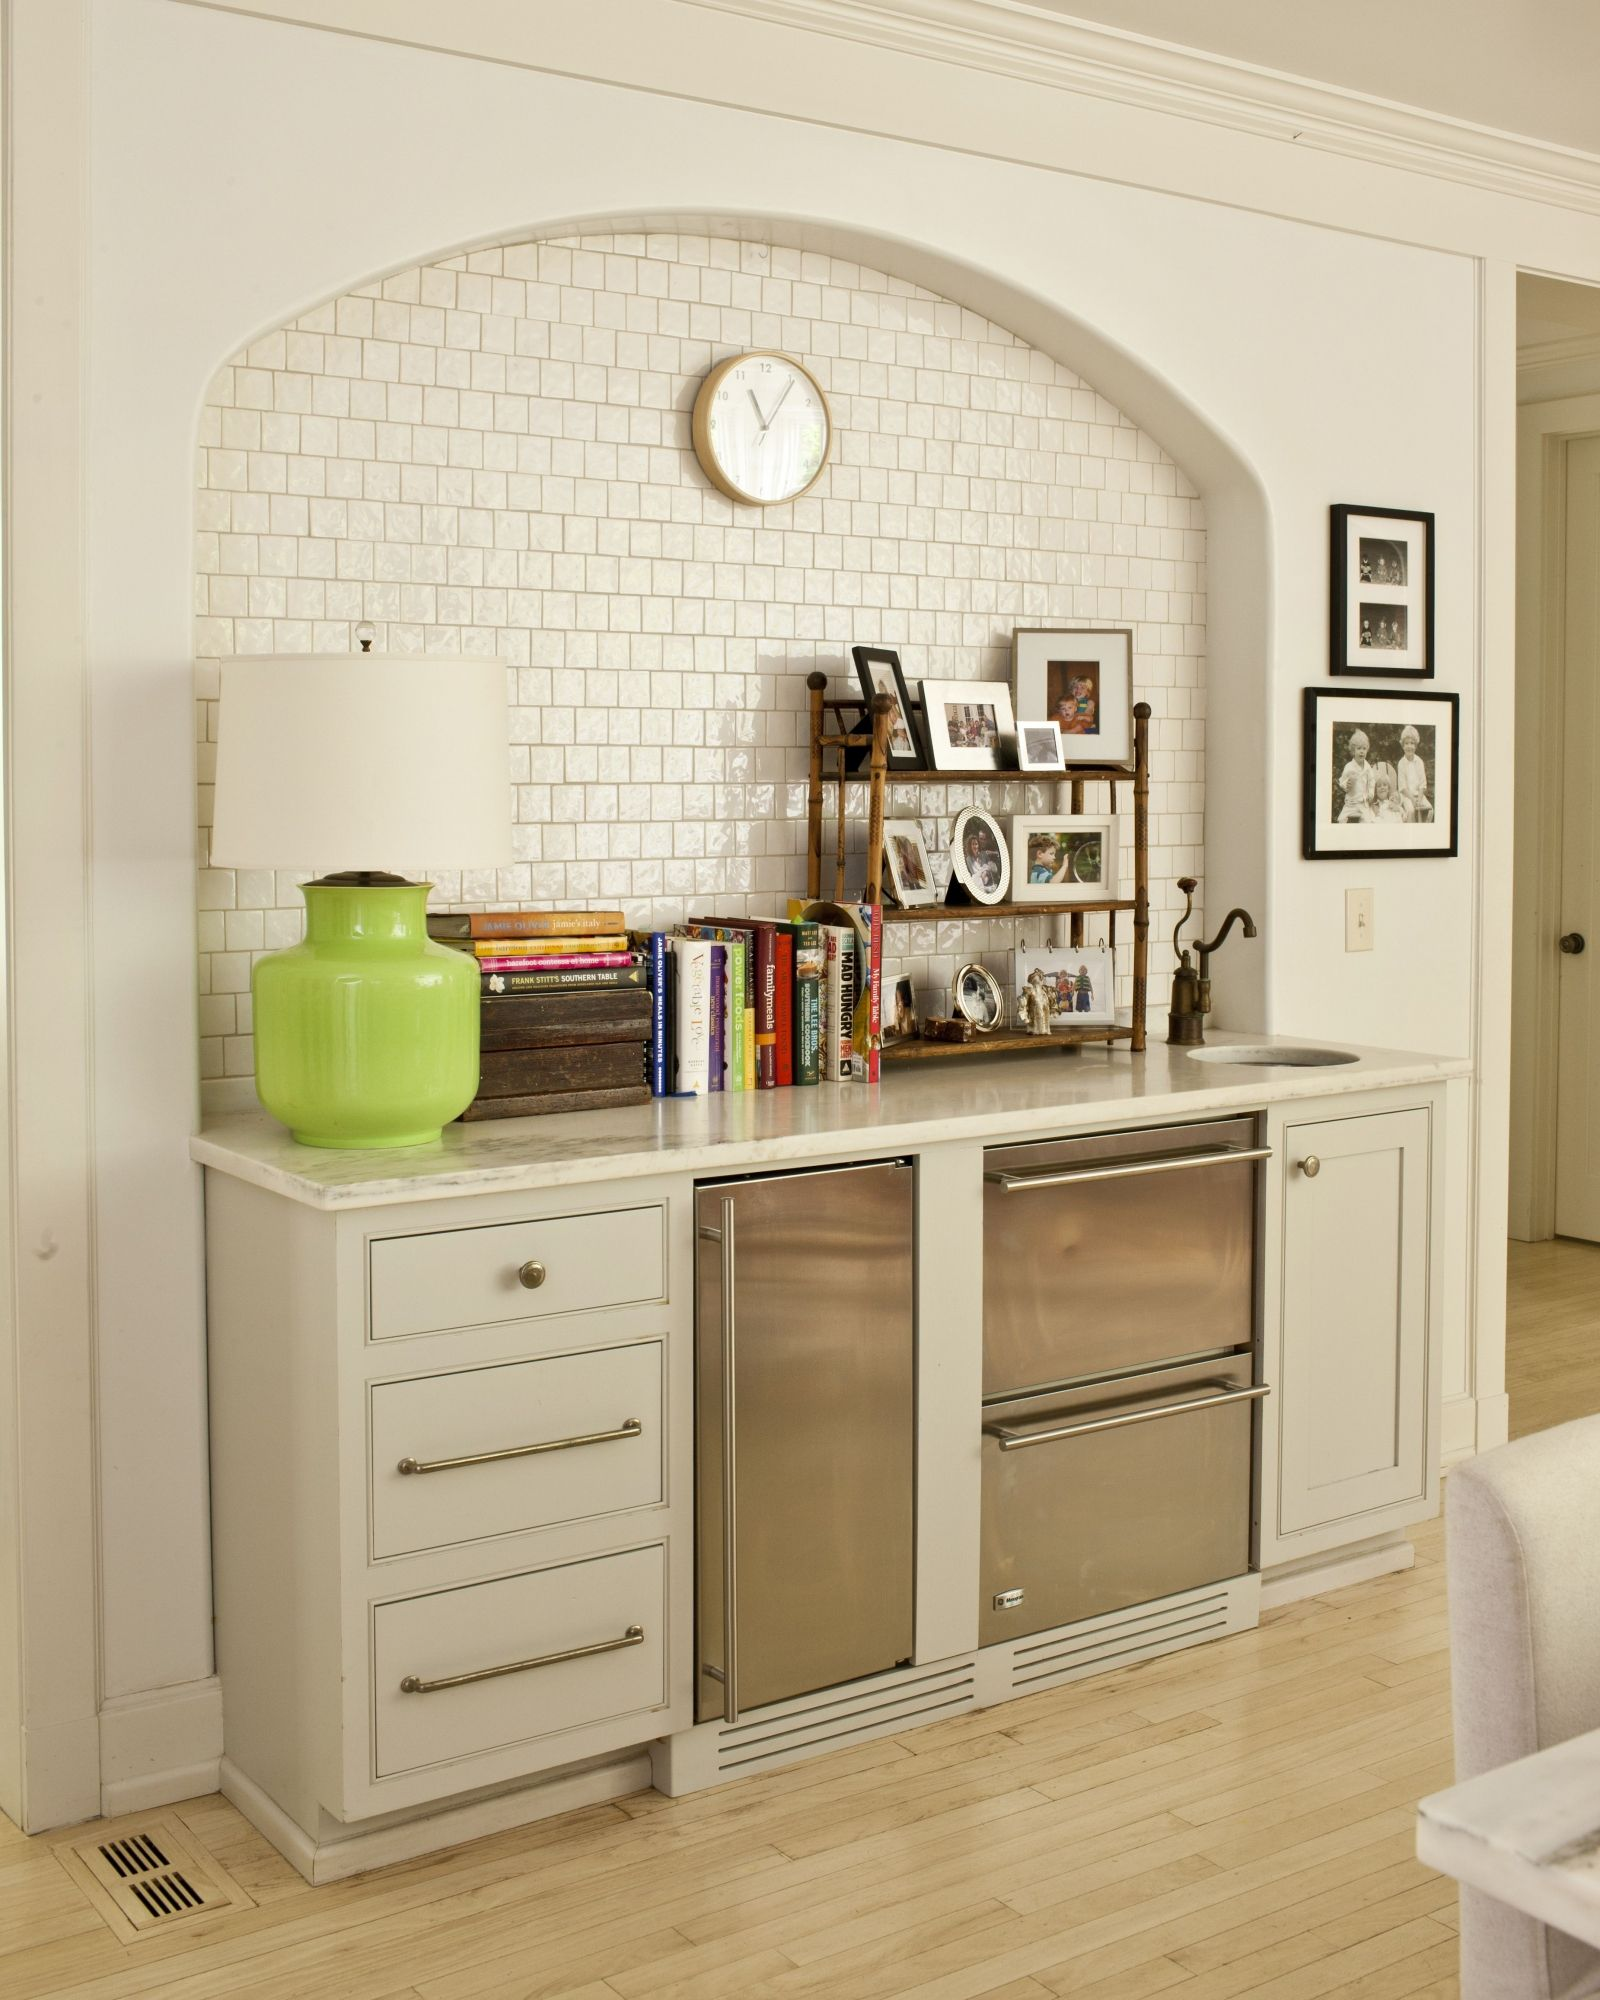 Small Drink Bar Turned Tiny Full Kitchen With A Butcher Block Over Two Burner Stove Where The Lamp Is And Replace Cooler Drawers An Oven